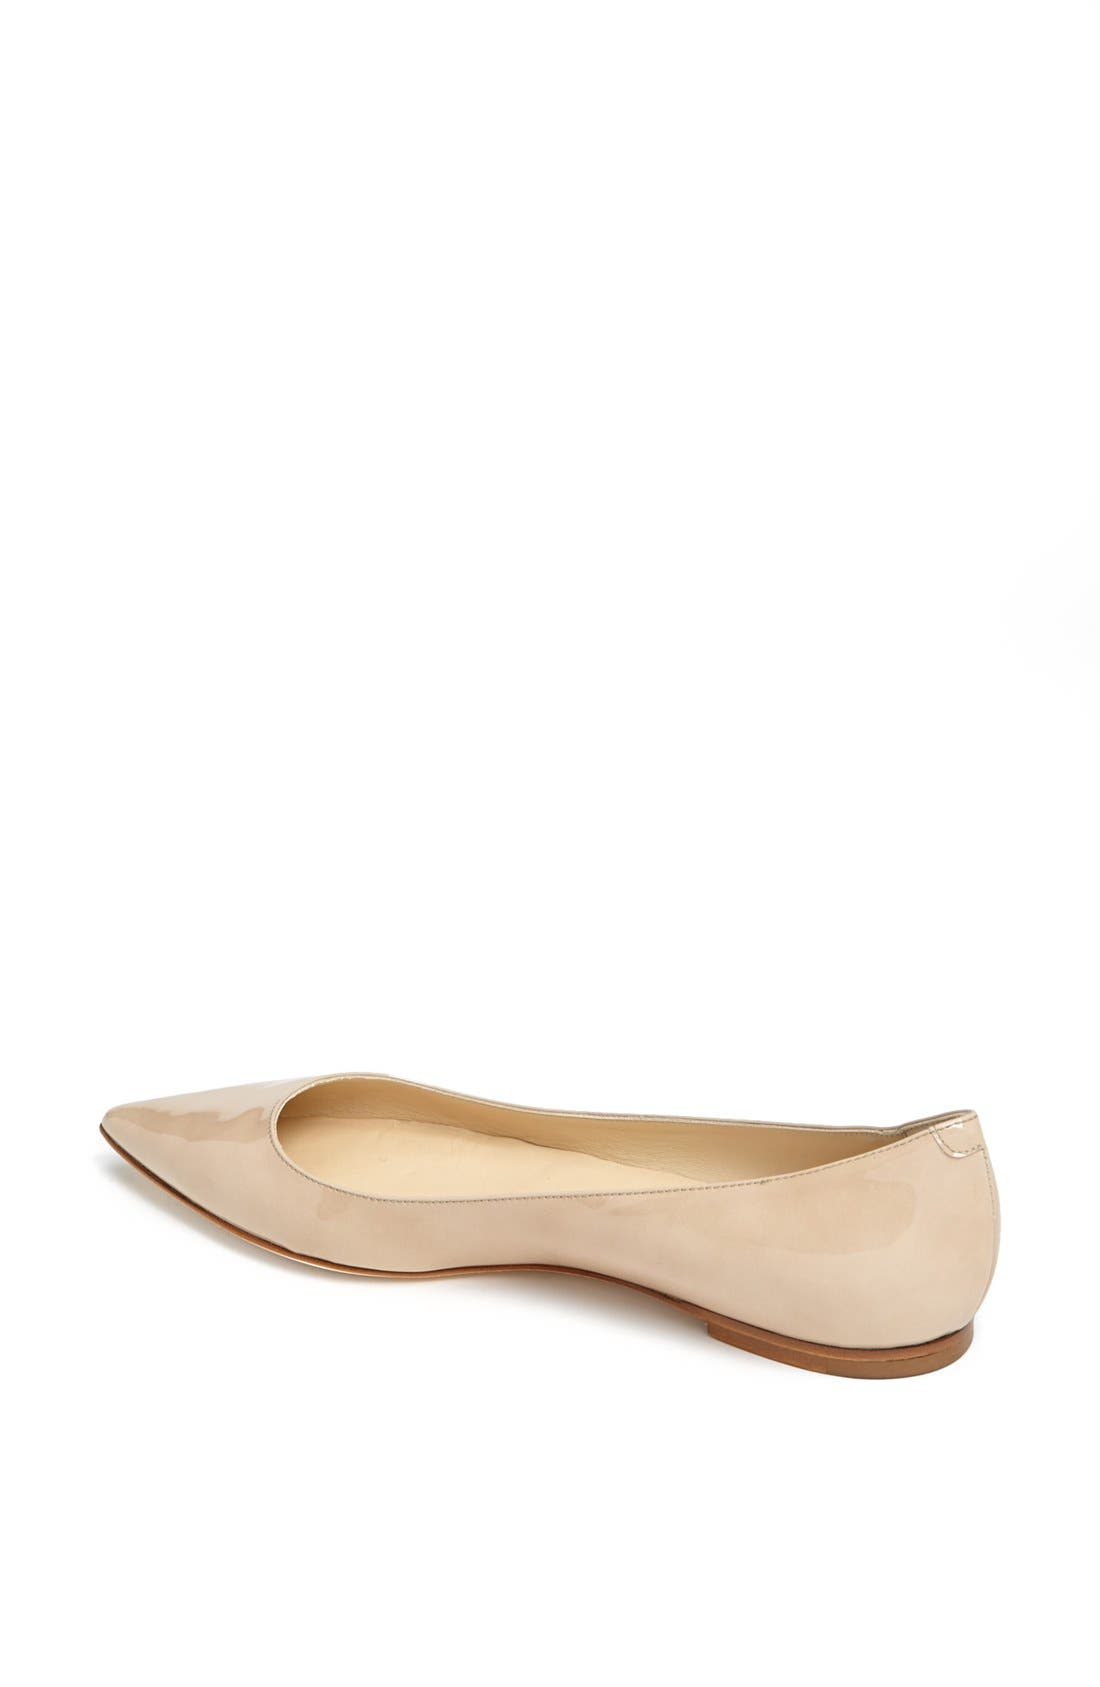 Alternate Image 2  - Jimmy Choo 'Alina' Pointy Toe Flat (Women)